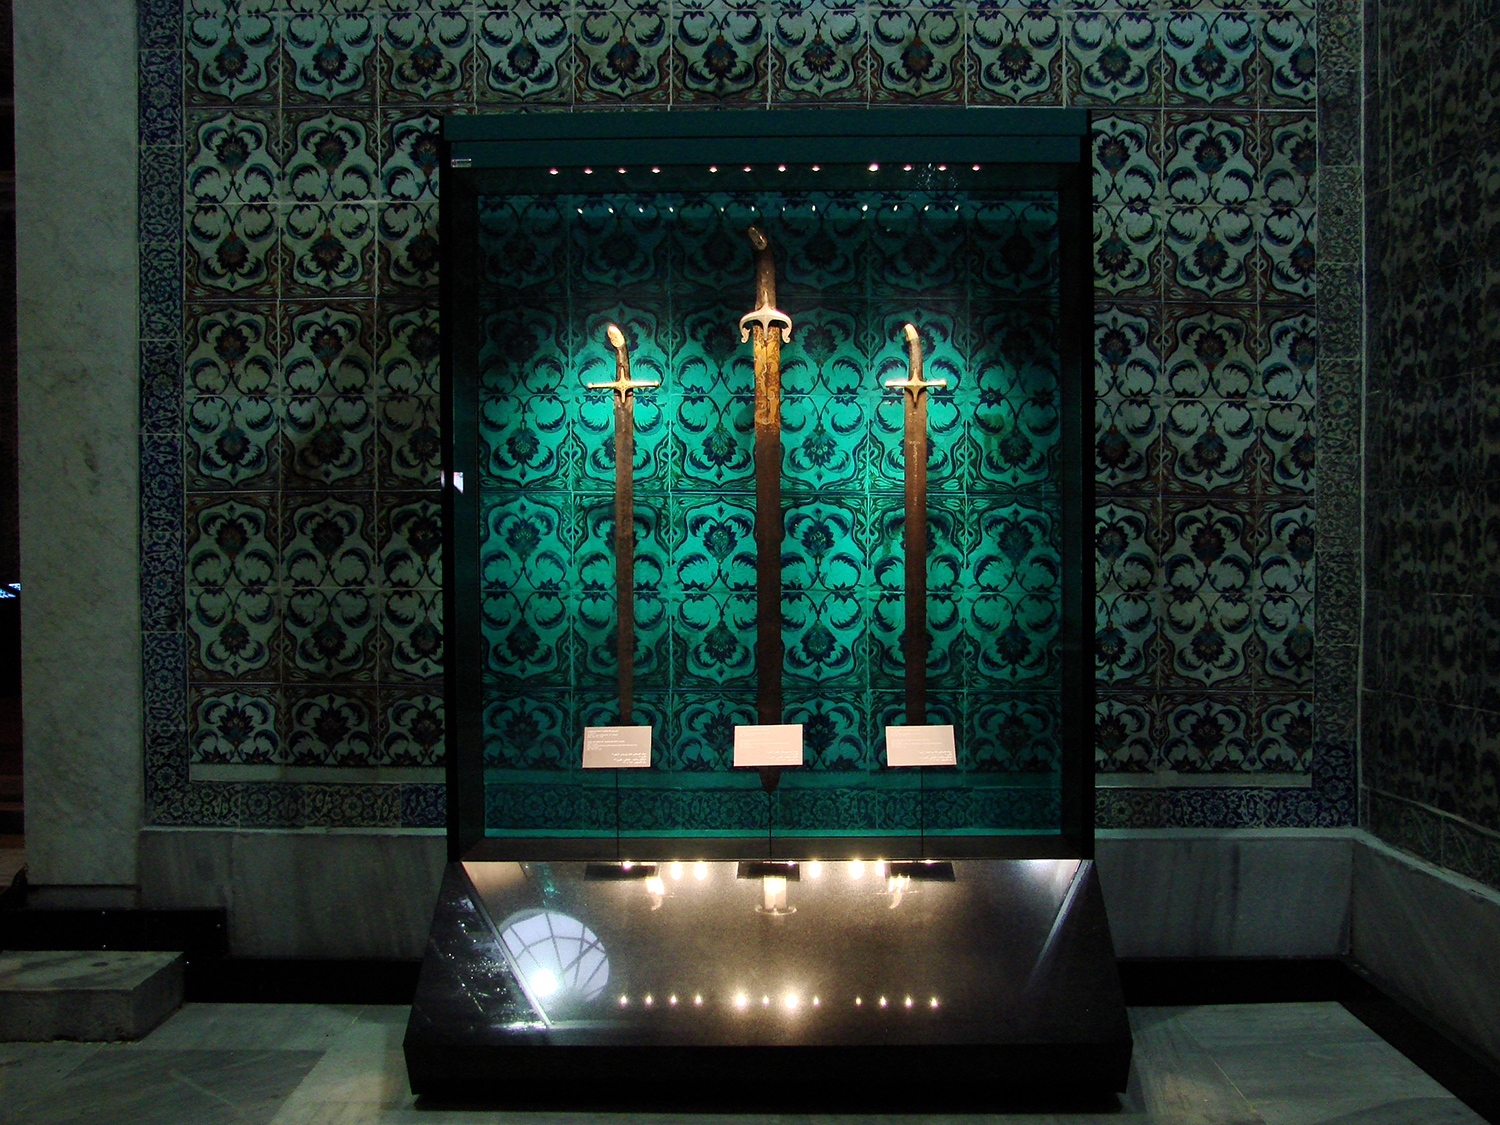 Figure 6: Relics of the Prophet Mohammed in the Topkapi Palace Museum, Istanbul.